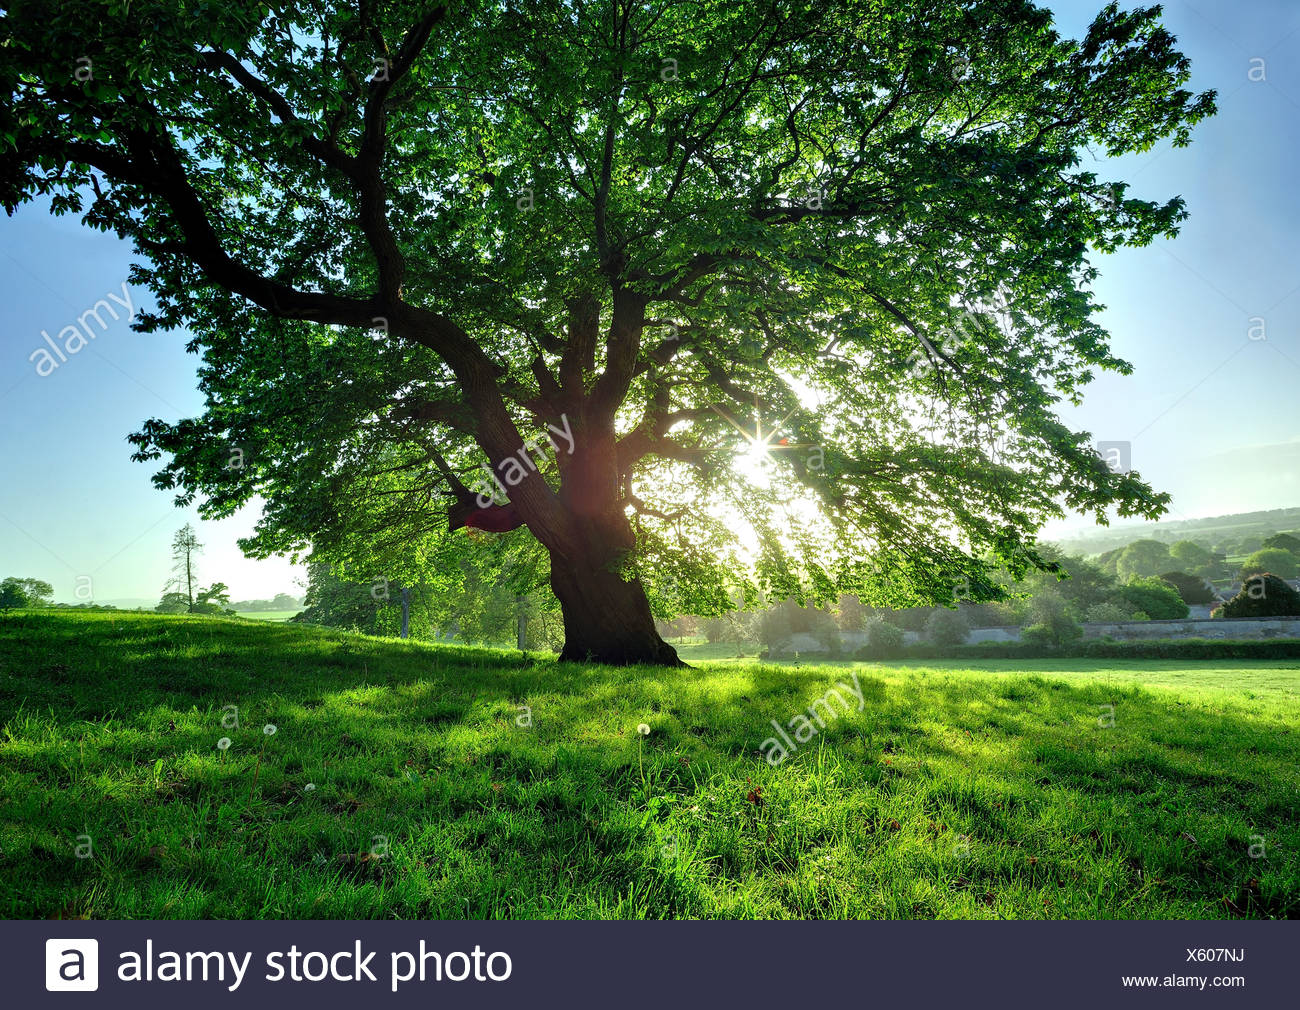 Tree in bright sunlight - Stock Image